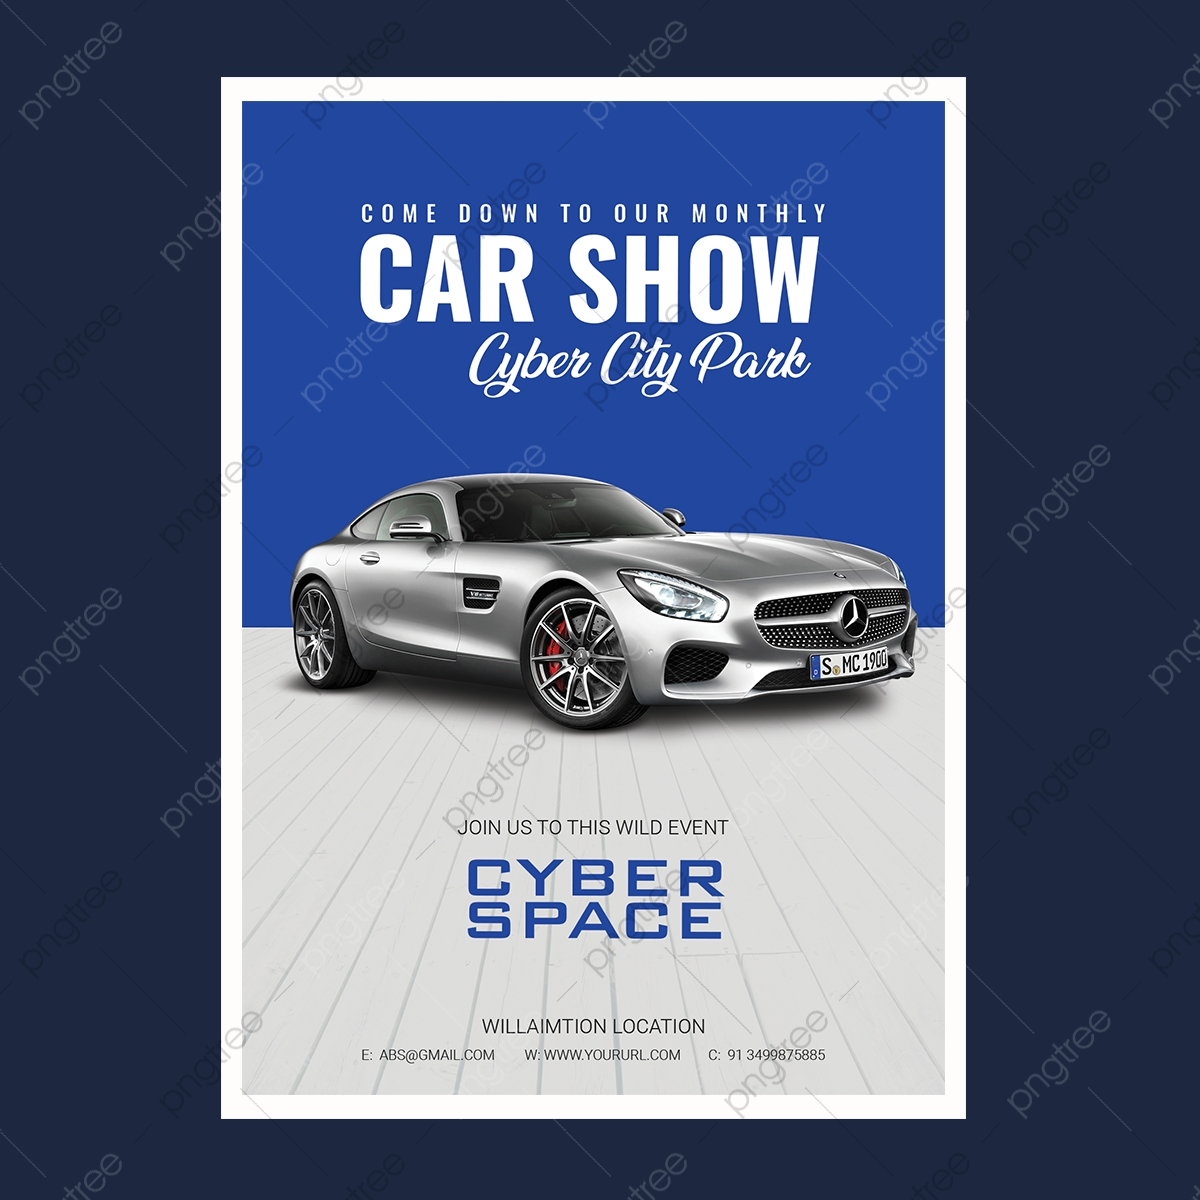 Free Car Show Flyer Template from png.pngtree.com